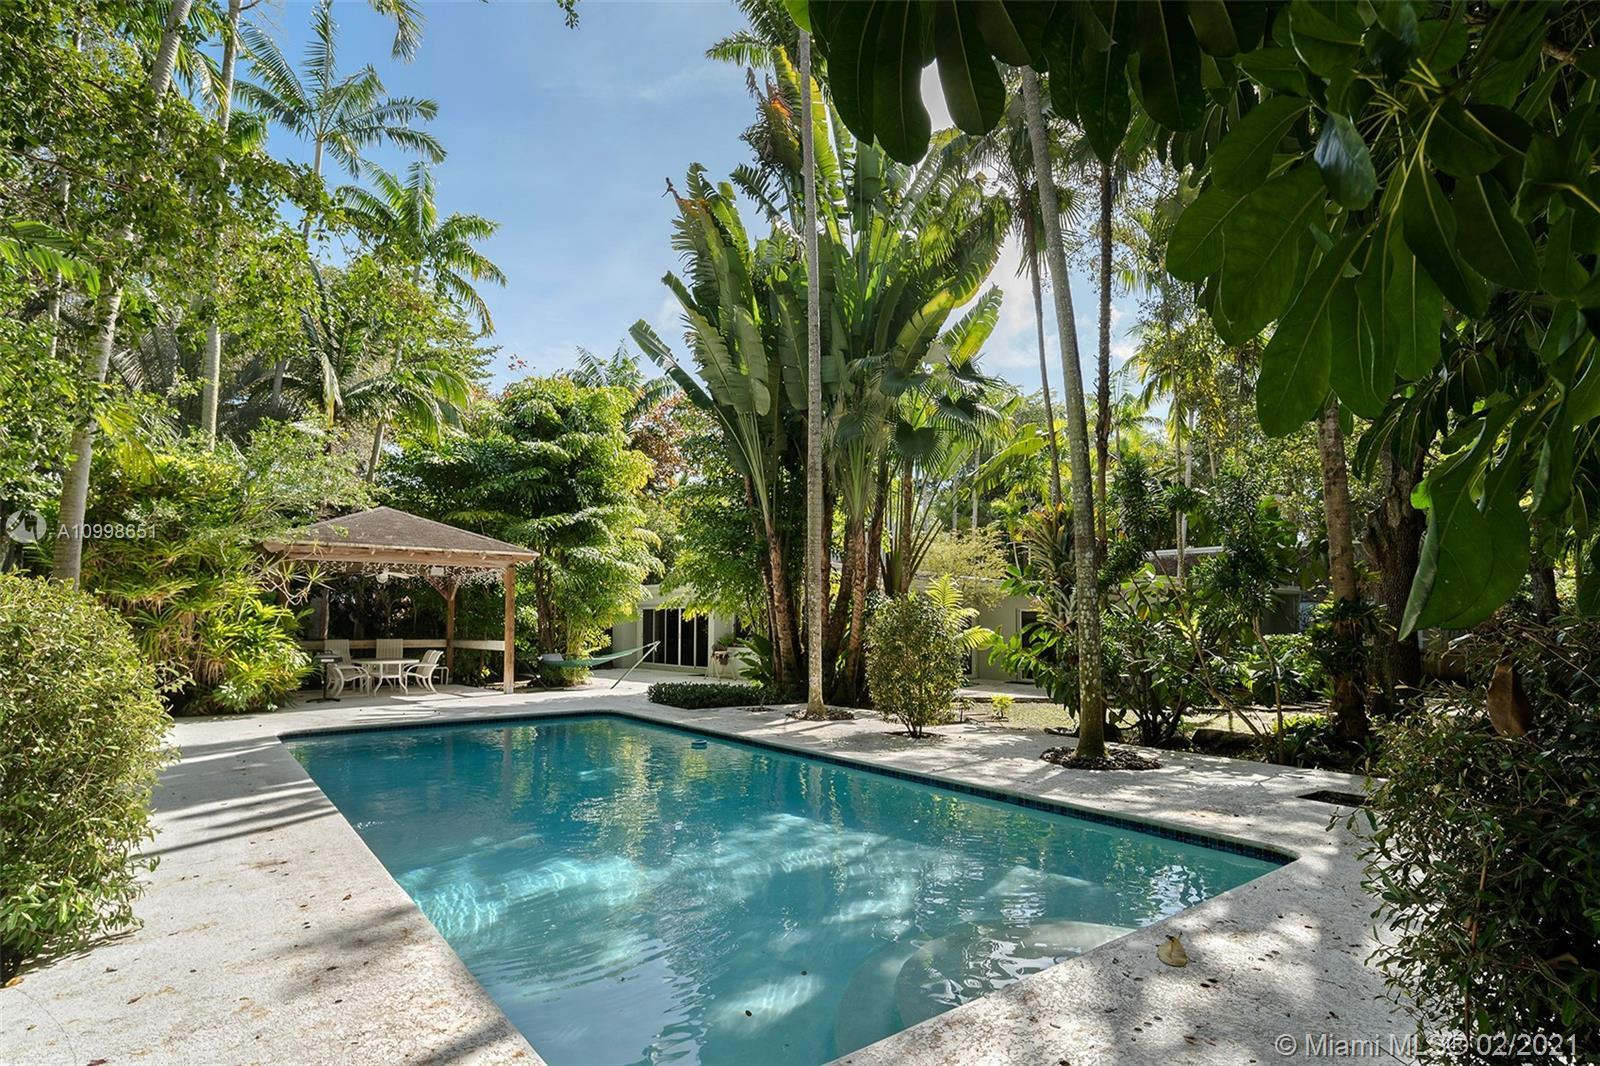 A steal in North Pinecrest located on a magnificent and tranquil street. Enter this walled and gated